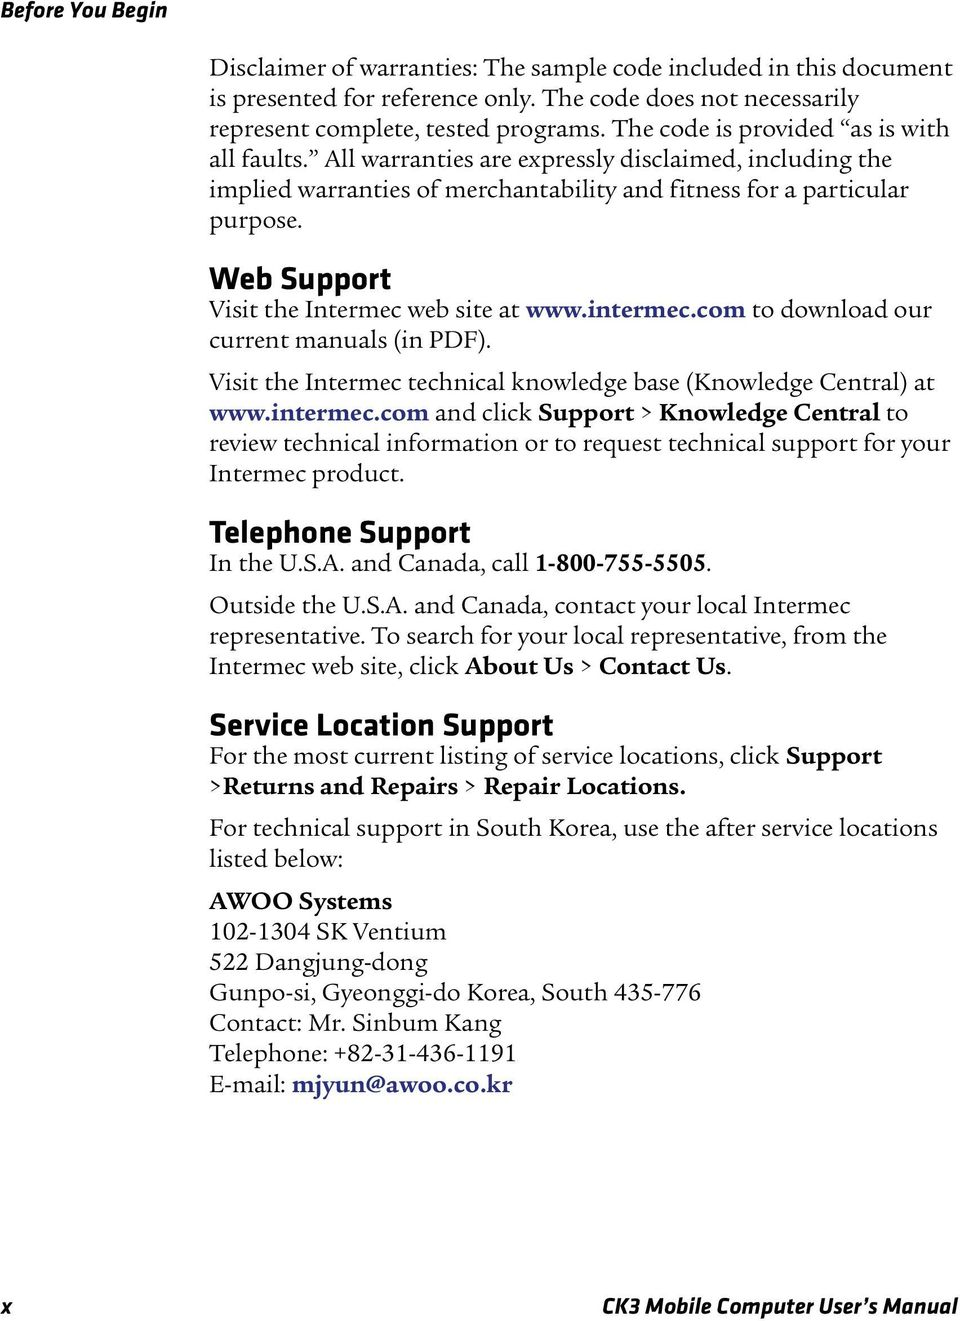 Web Support Visit the Intermec web site at www.intermec.com to download our current manuals (in PDF). Visit the Intermec technical knowledge base (Knowledge Central) at www.intermec.com and click Support > Knowledge Central to review technical information or to request technical support for your Intermec product.